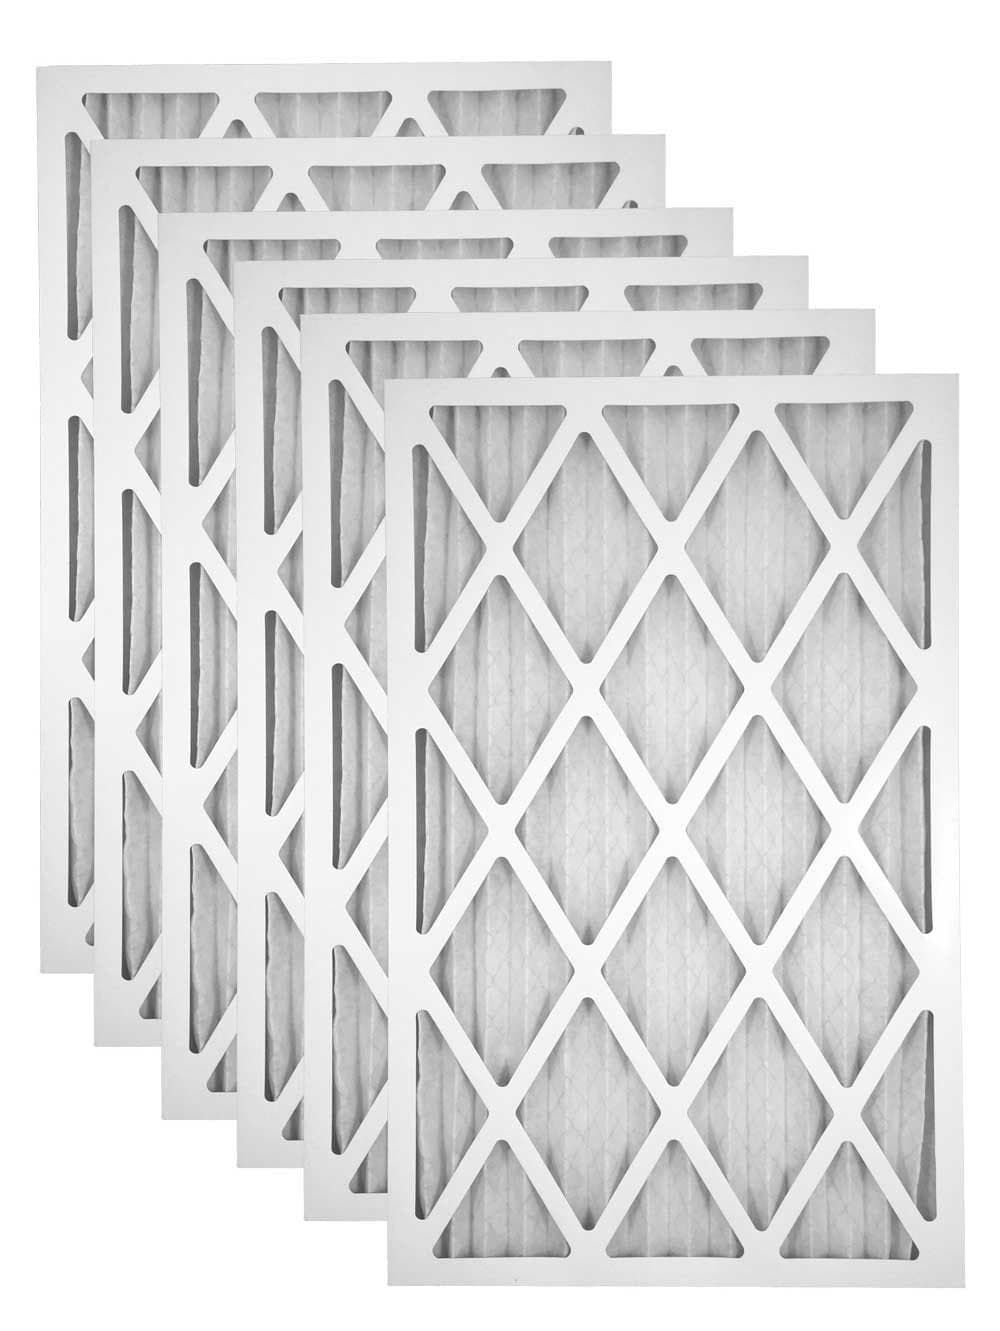 20x21x1 Merv 8 Pleated AC Furnace Filter - Case of 6